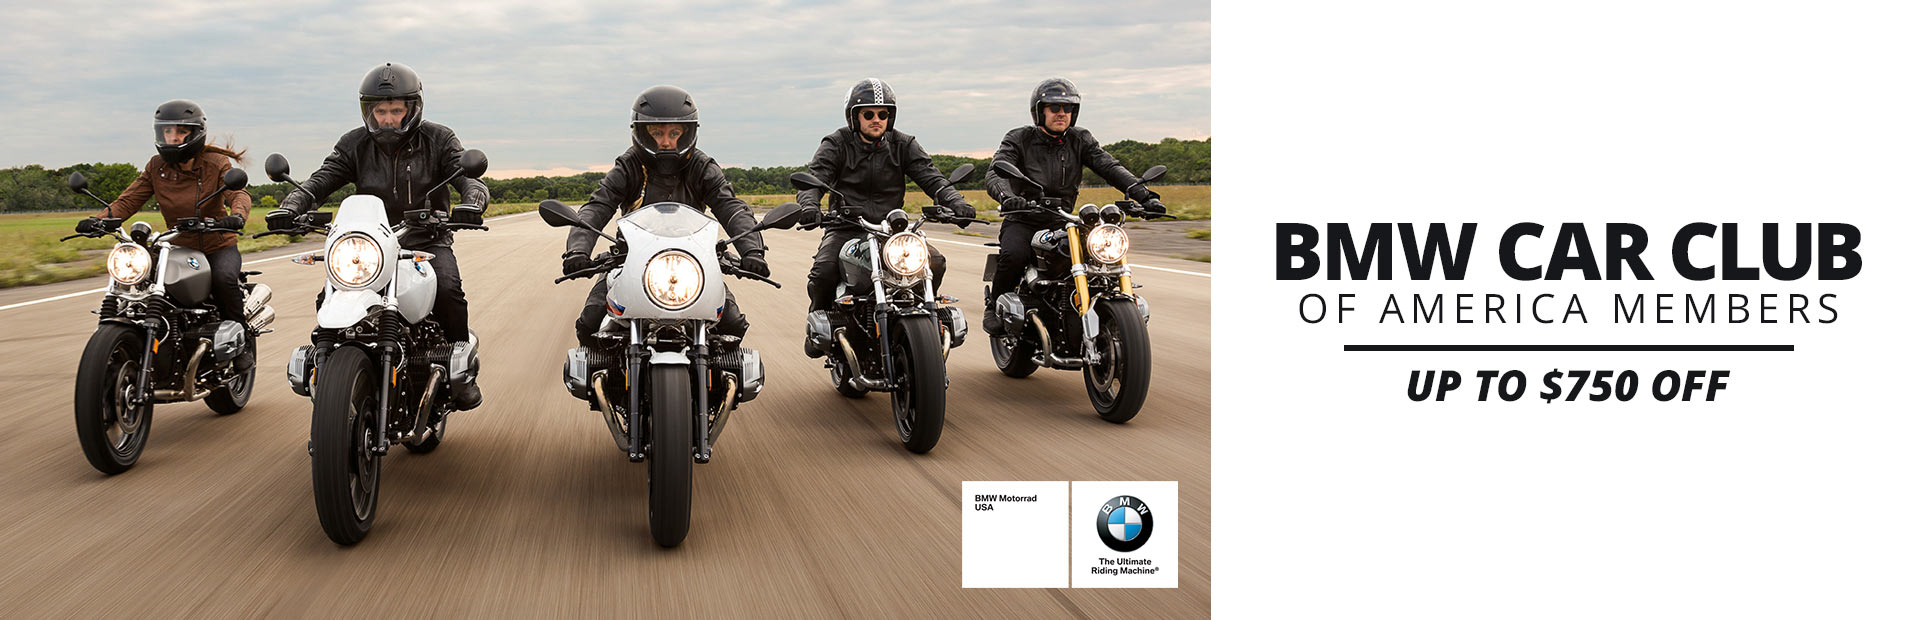 BMW: BMW Car Club of America Members Up To $750 Off